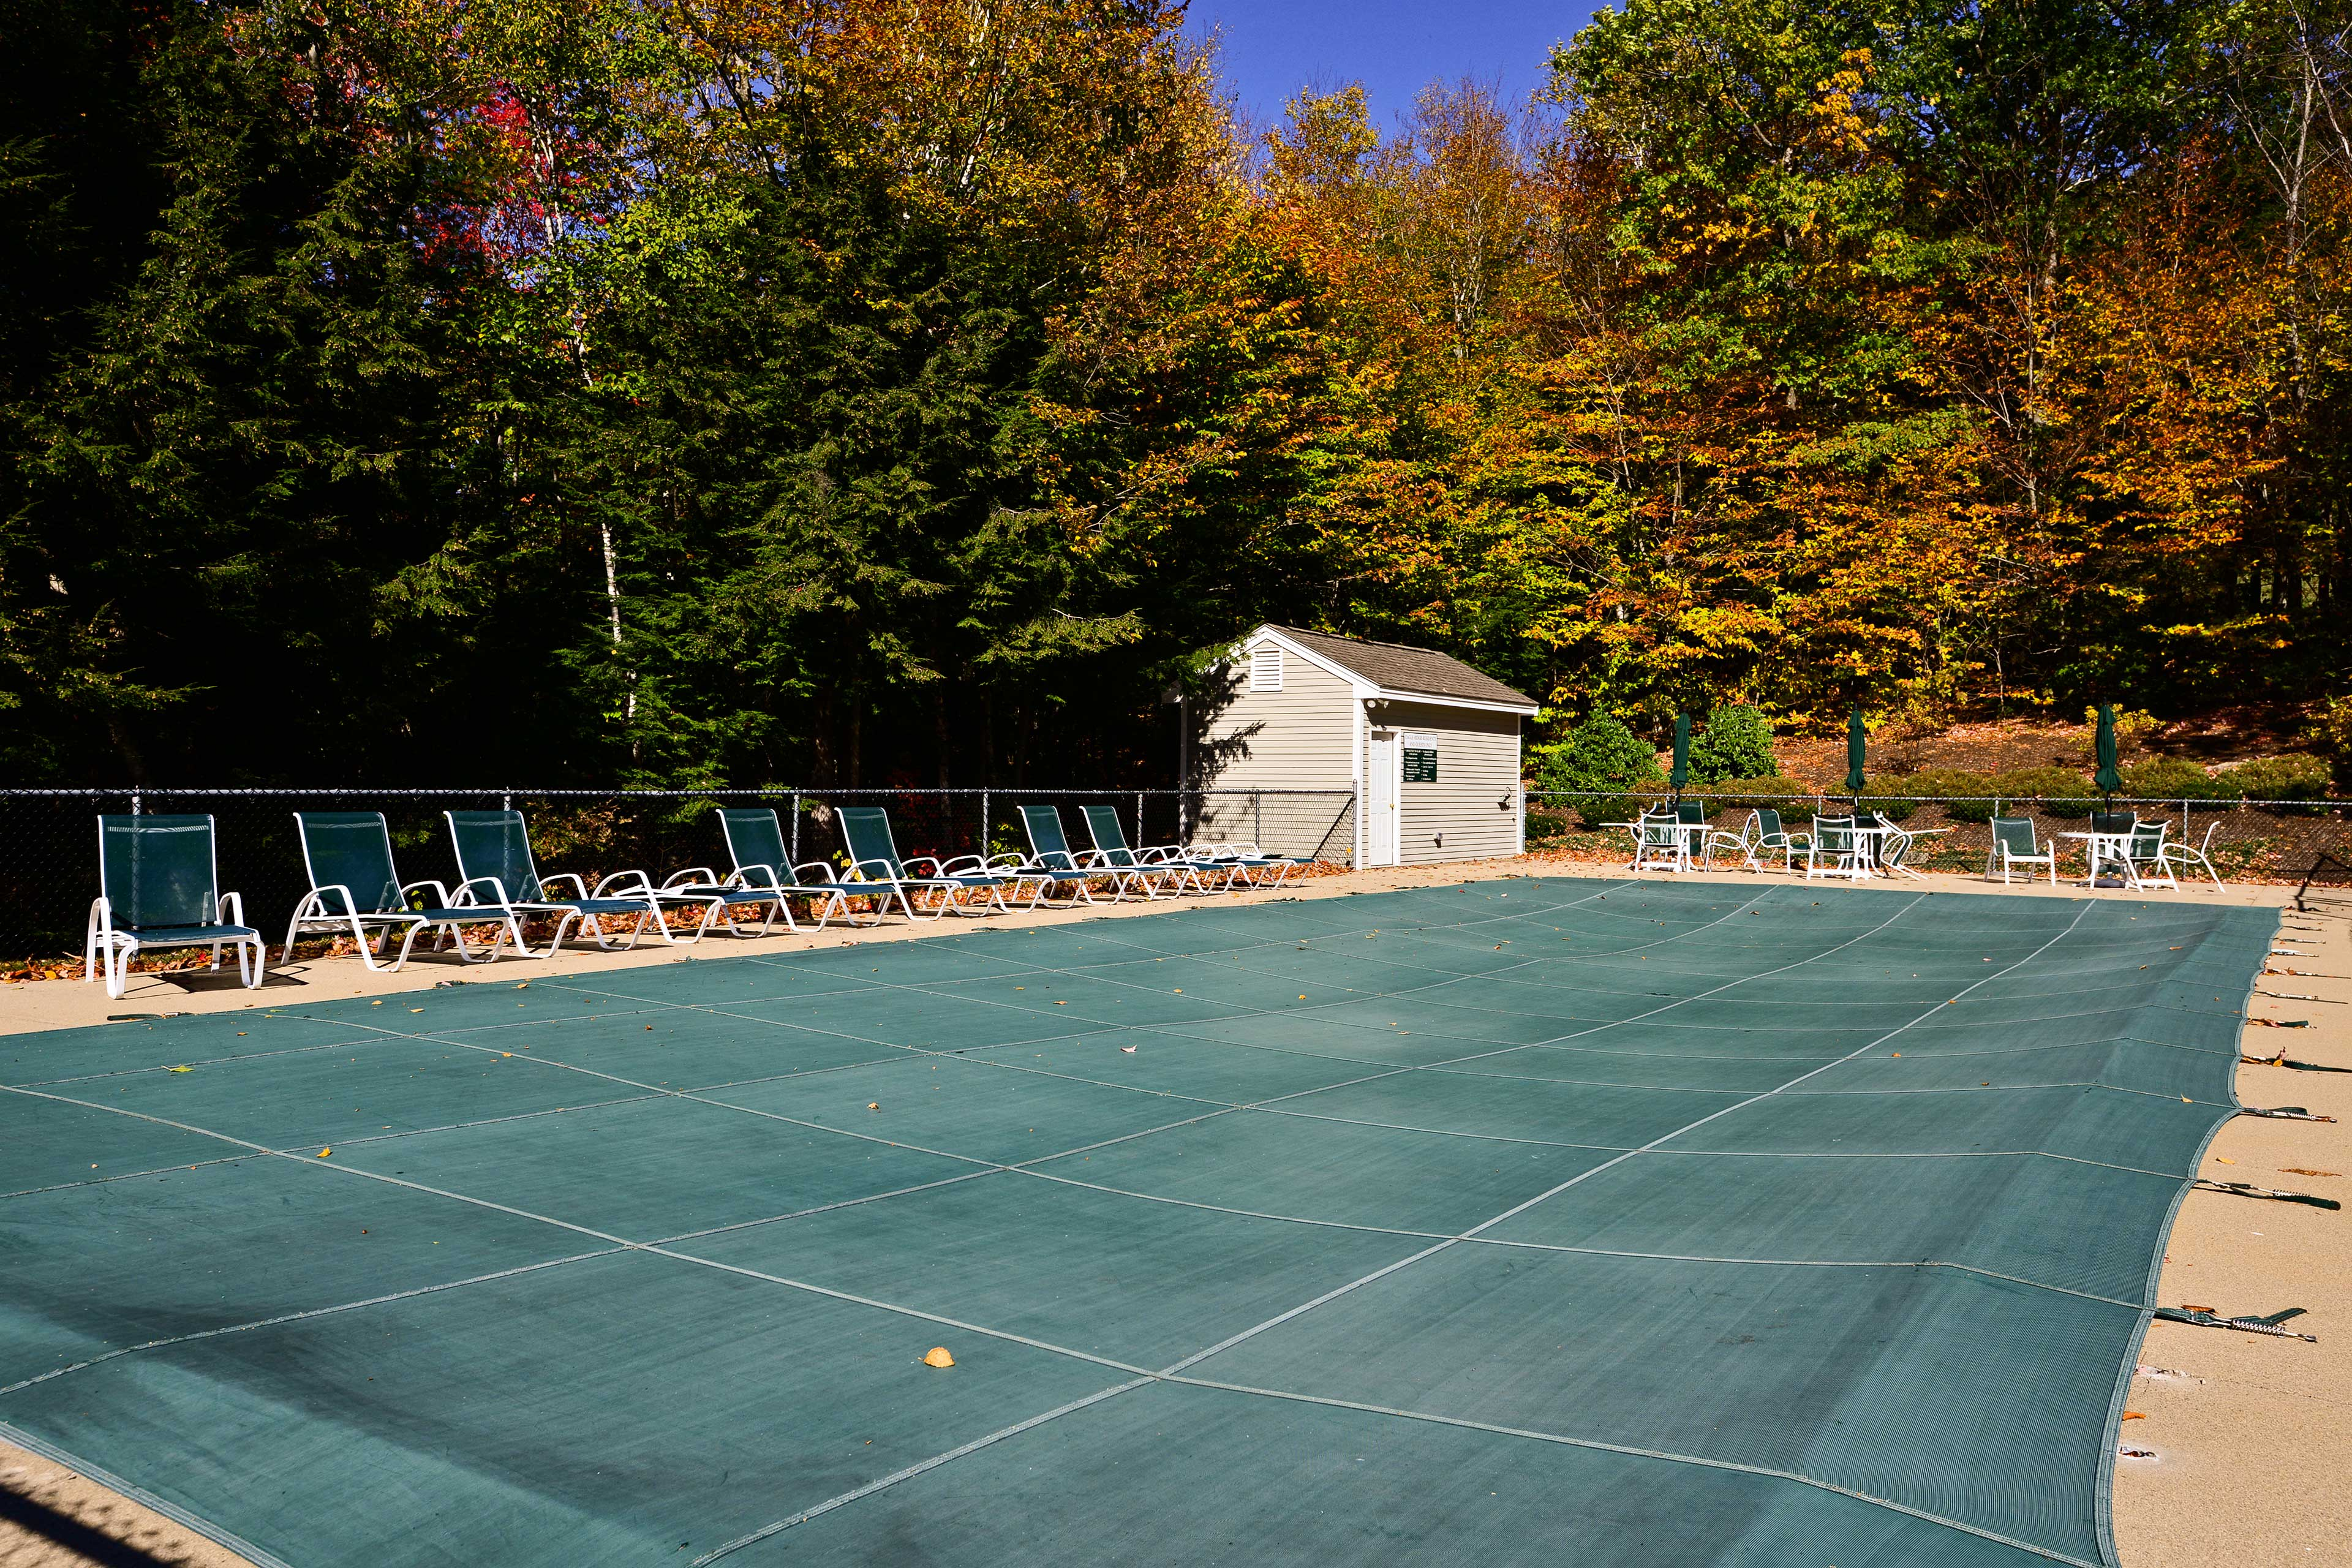 The pool is open in the summer months.